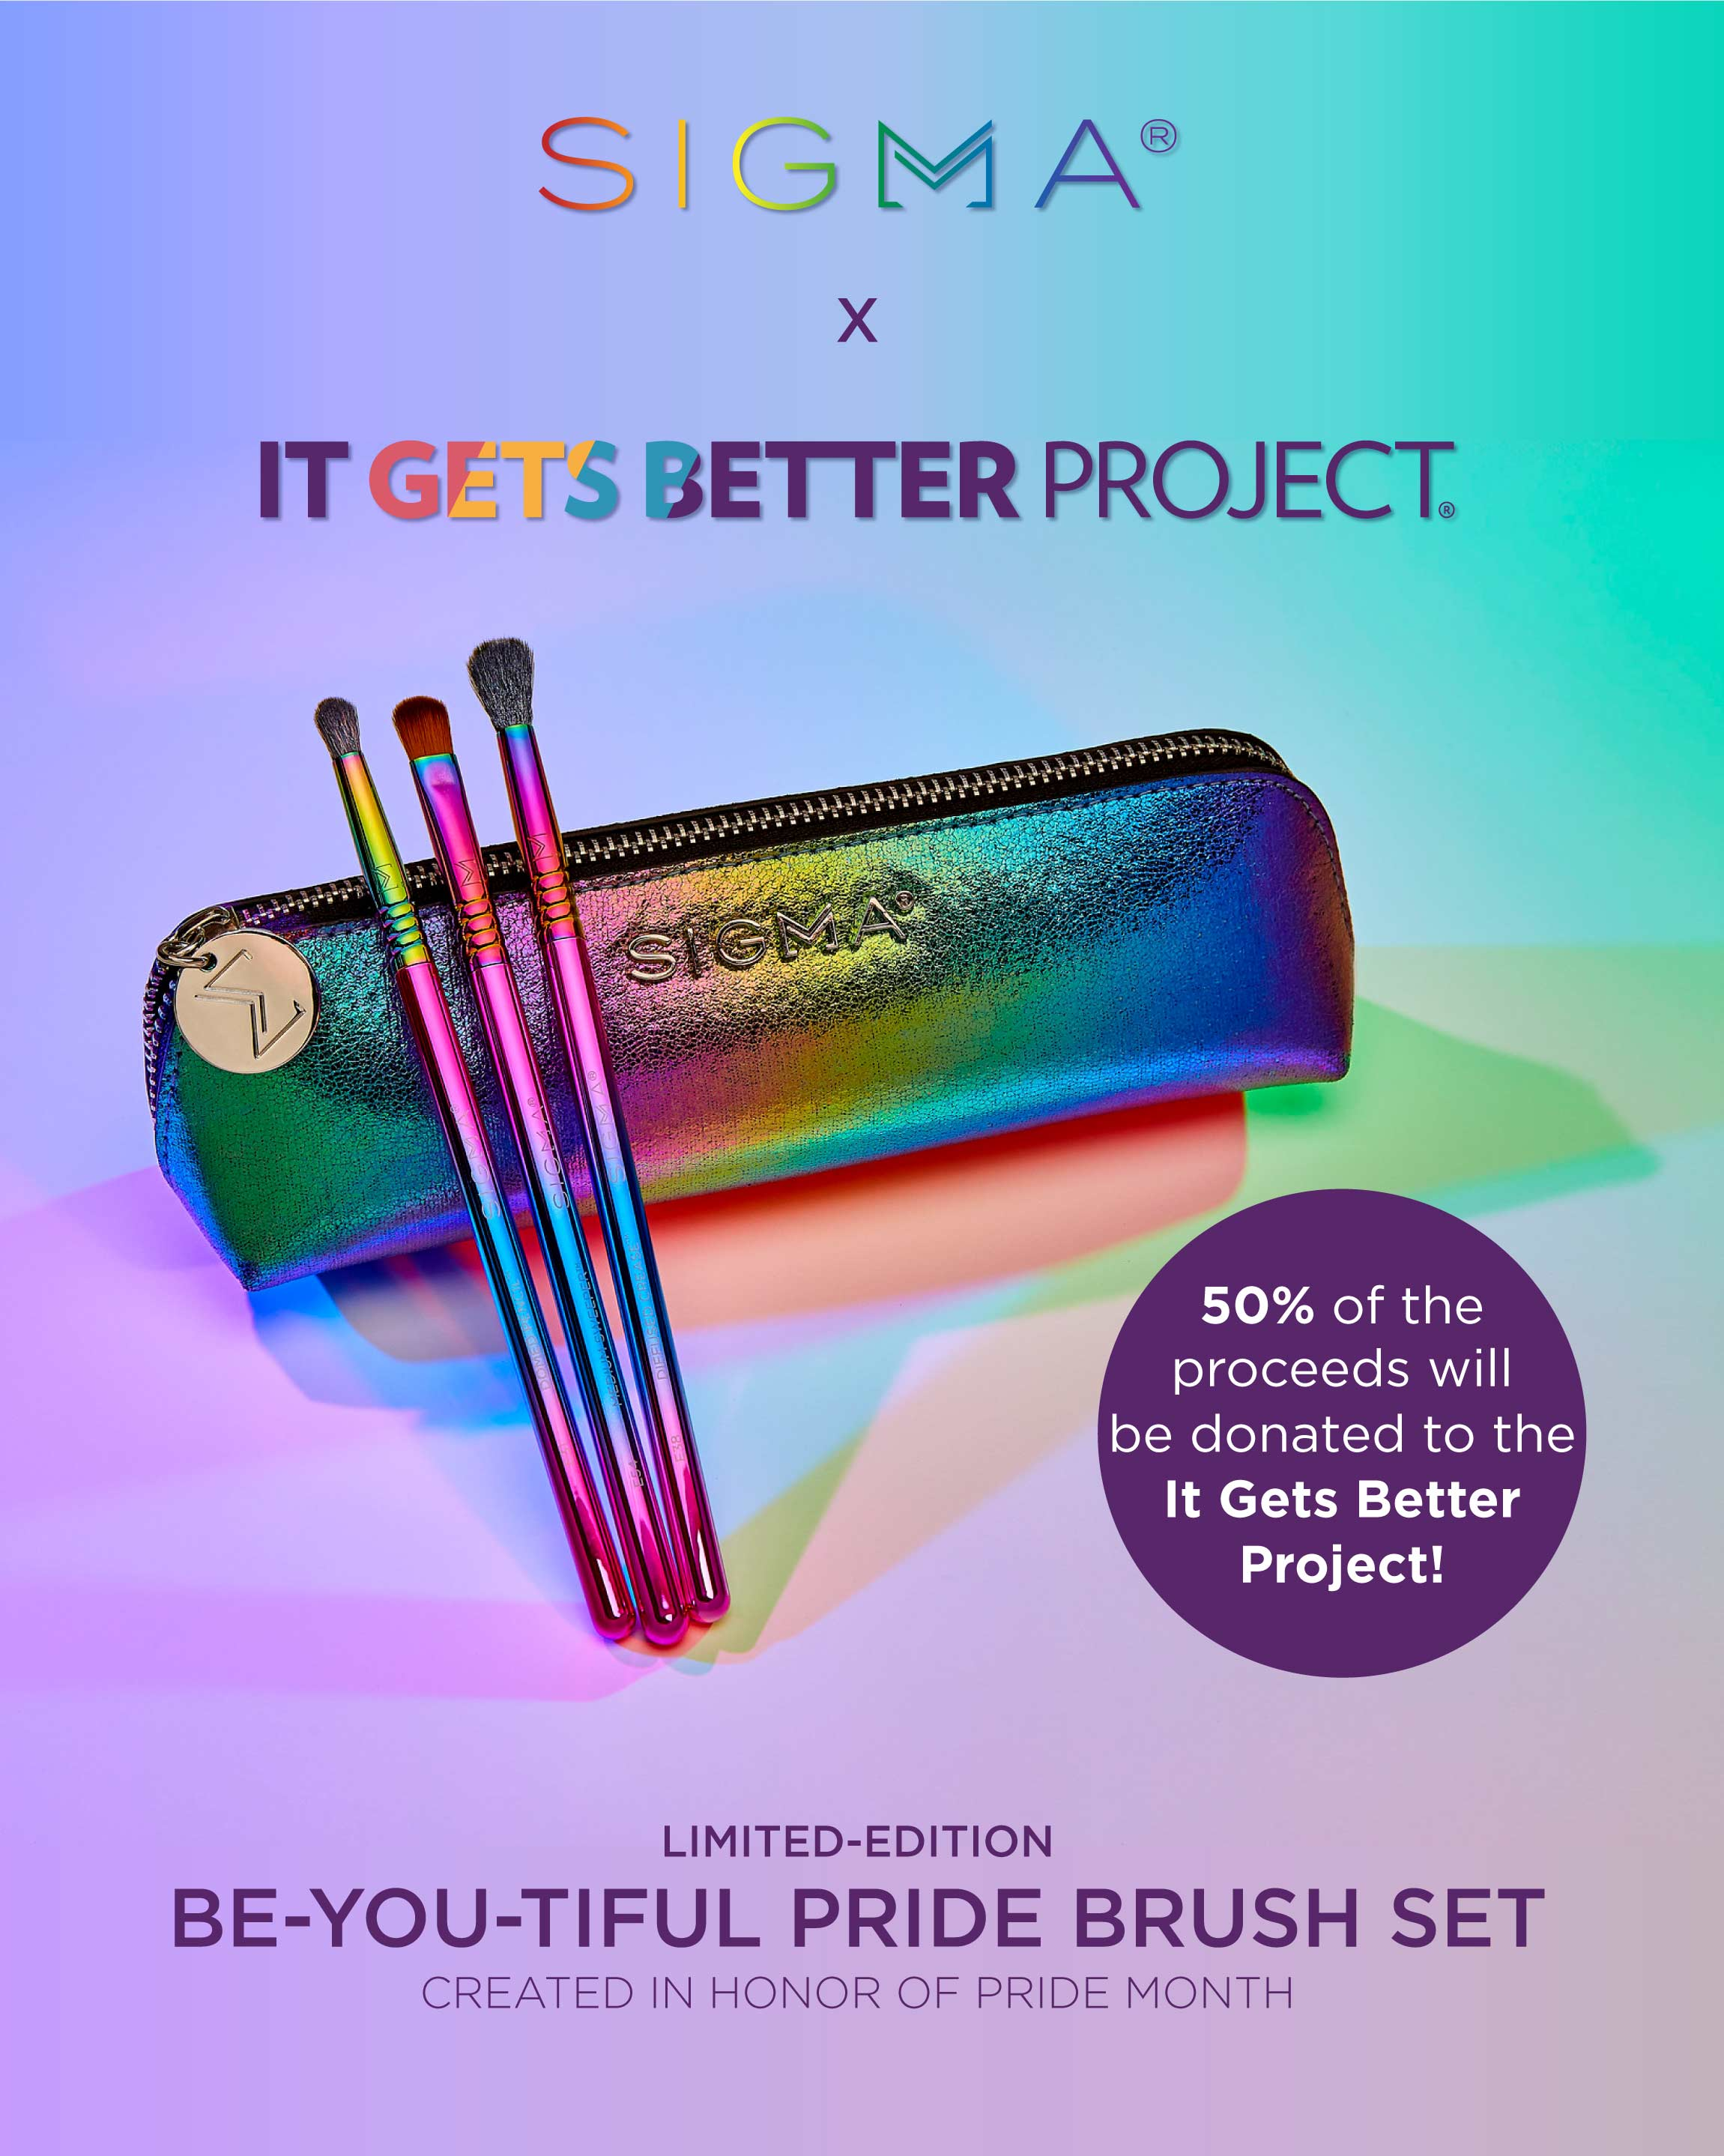 Sigma Beauty x It Gets Better Project   Be-YOU-tiful Pride Brush Set